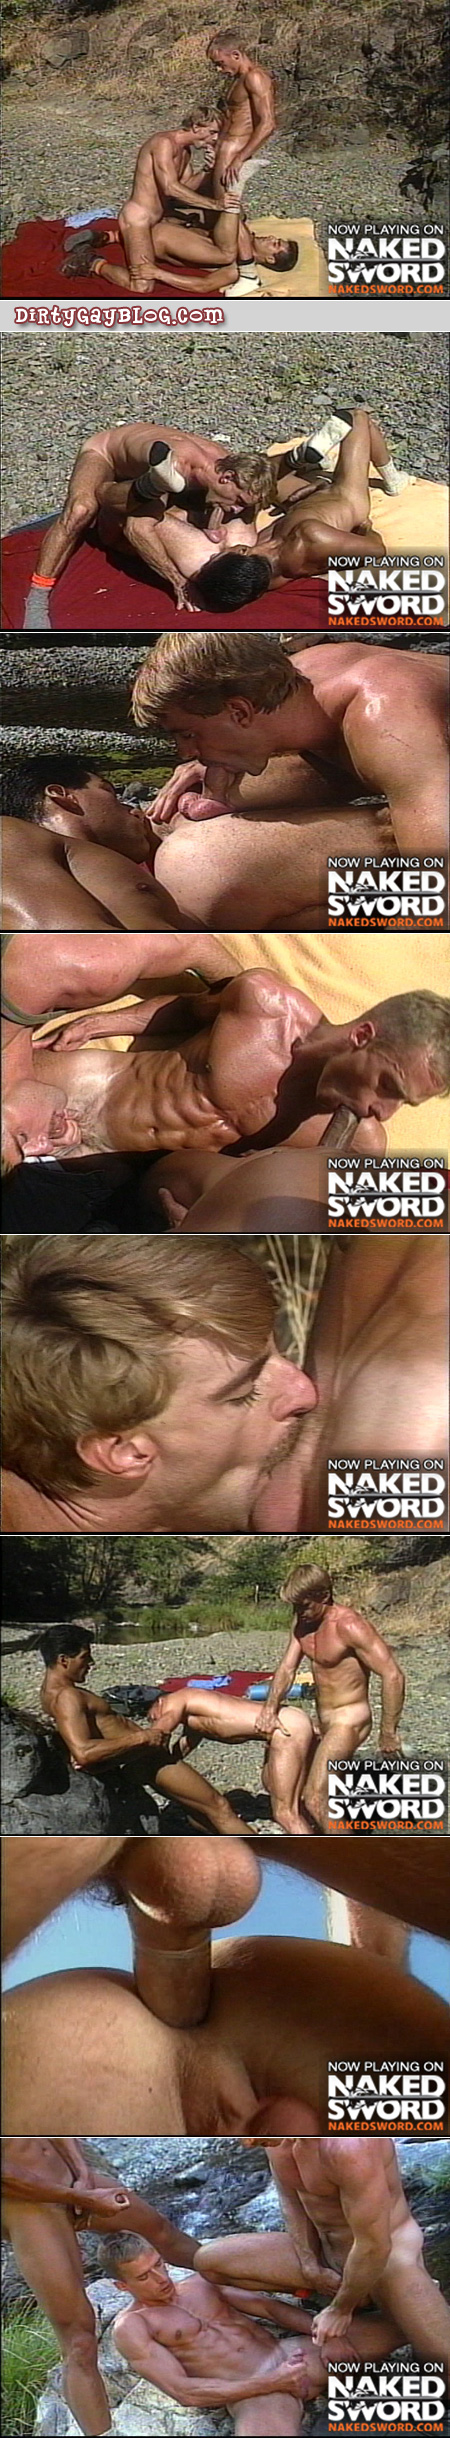 Mustachioed tan and blonde guy has a gay threeway by the river with two other ripped guys.